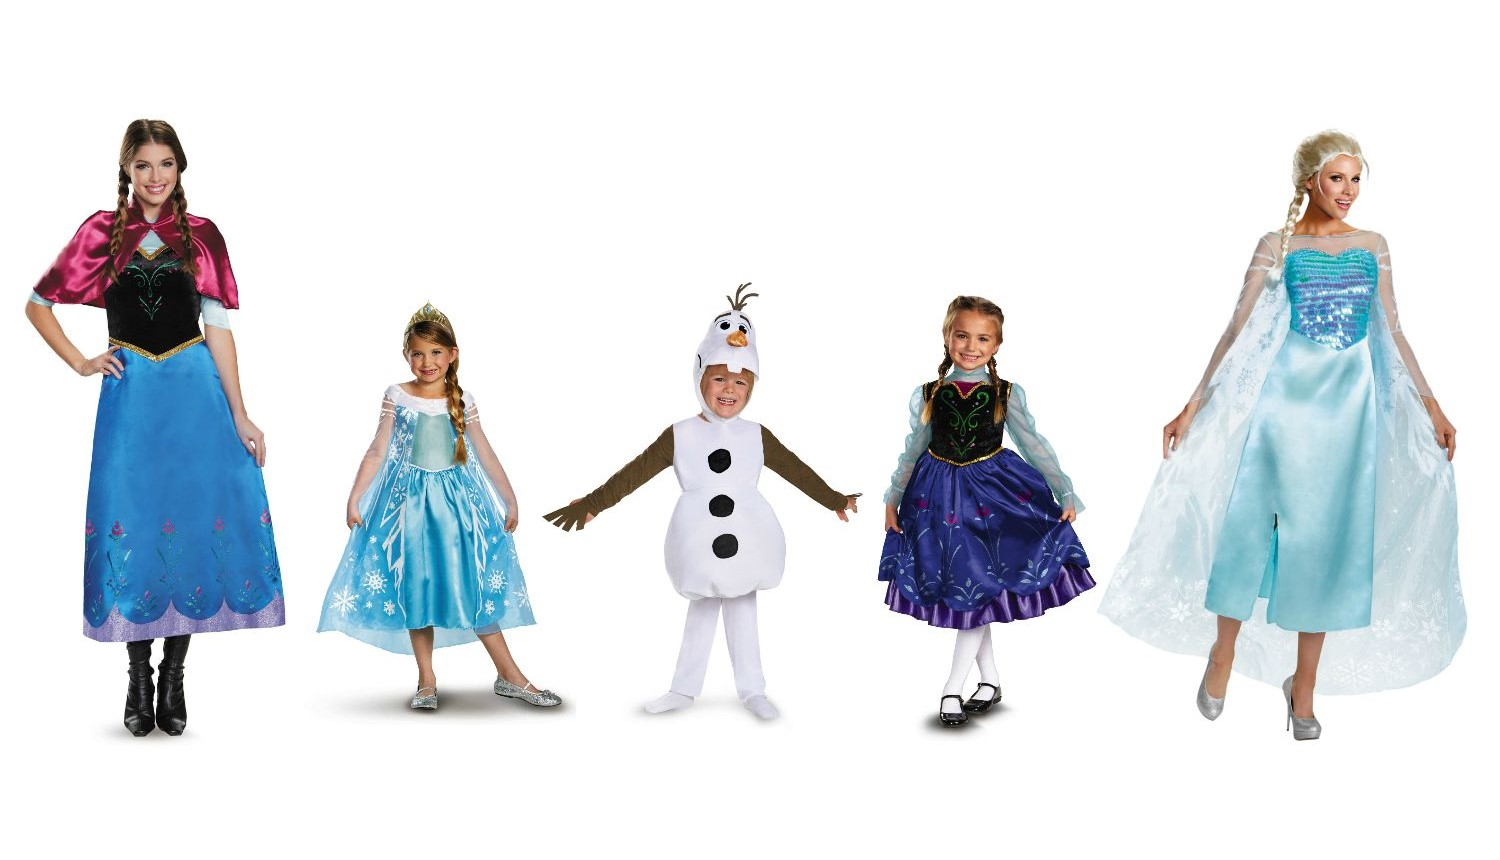 Family Of 4 Disney Halloween Costumes.4 Halloween Costumes For Families Long Island Pulse Magazine